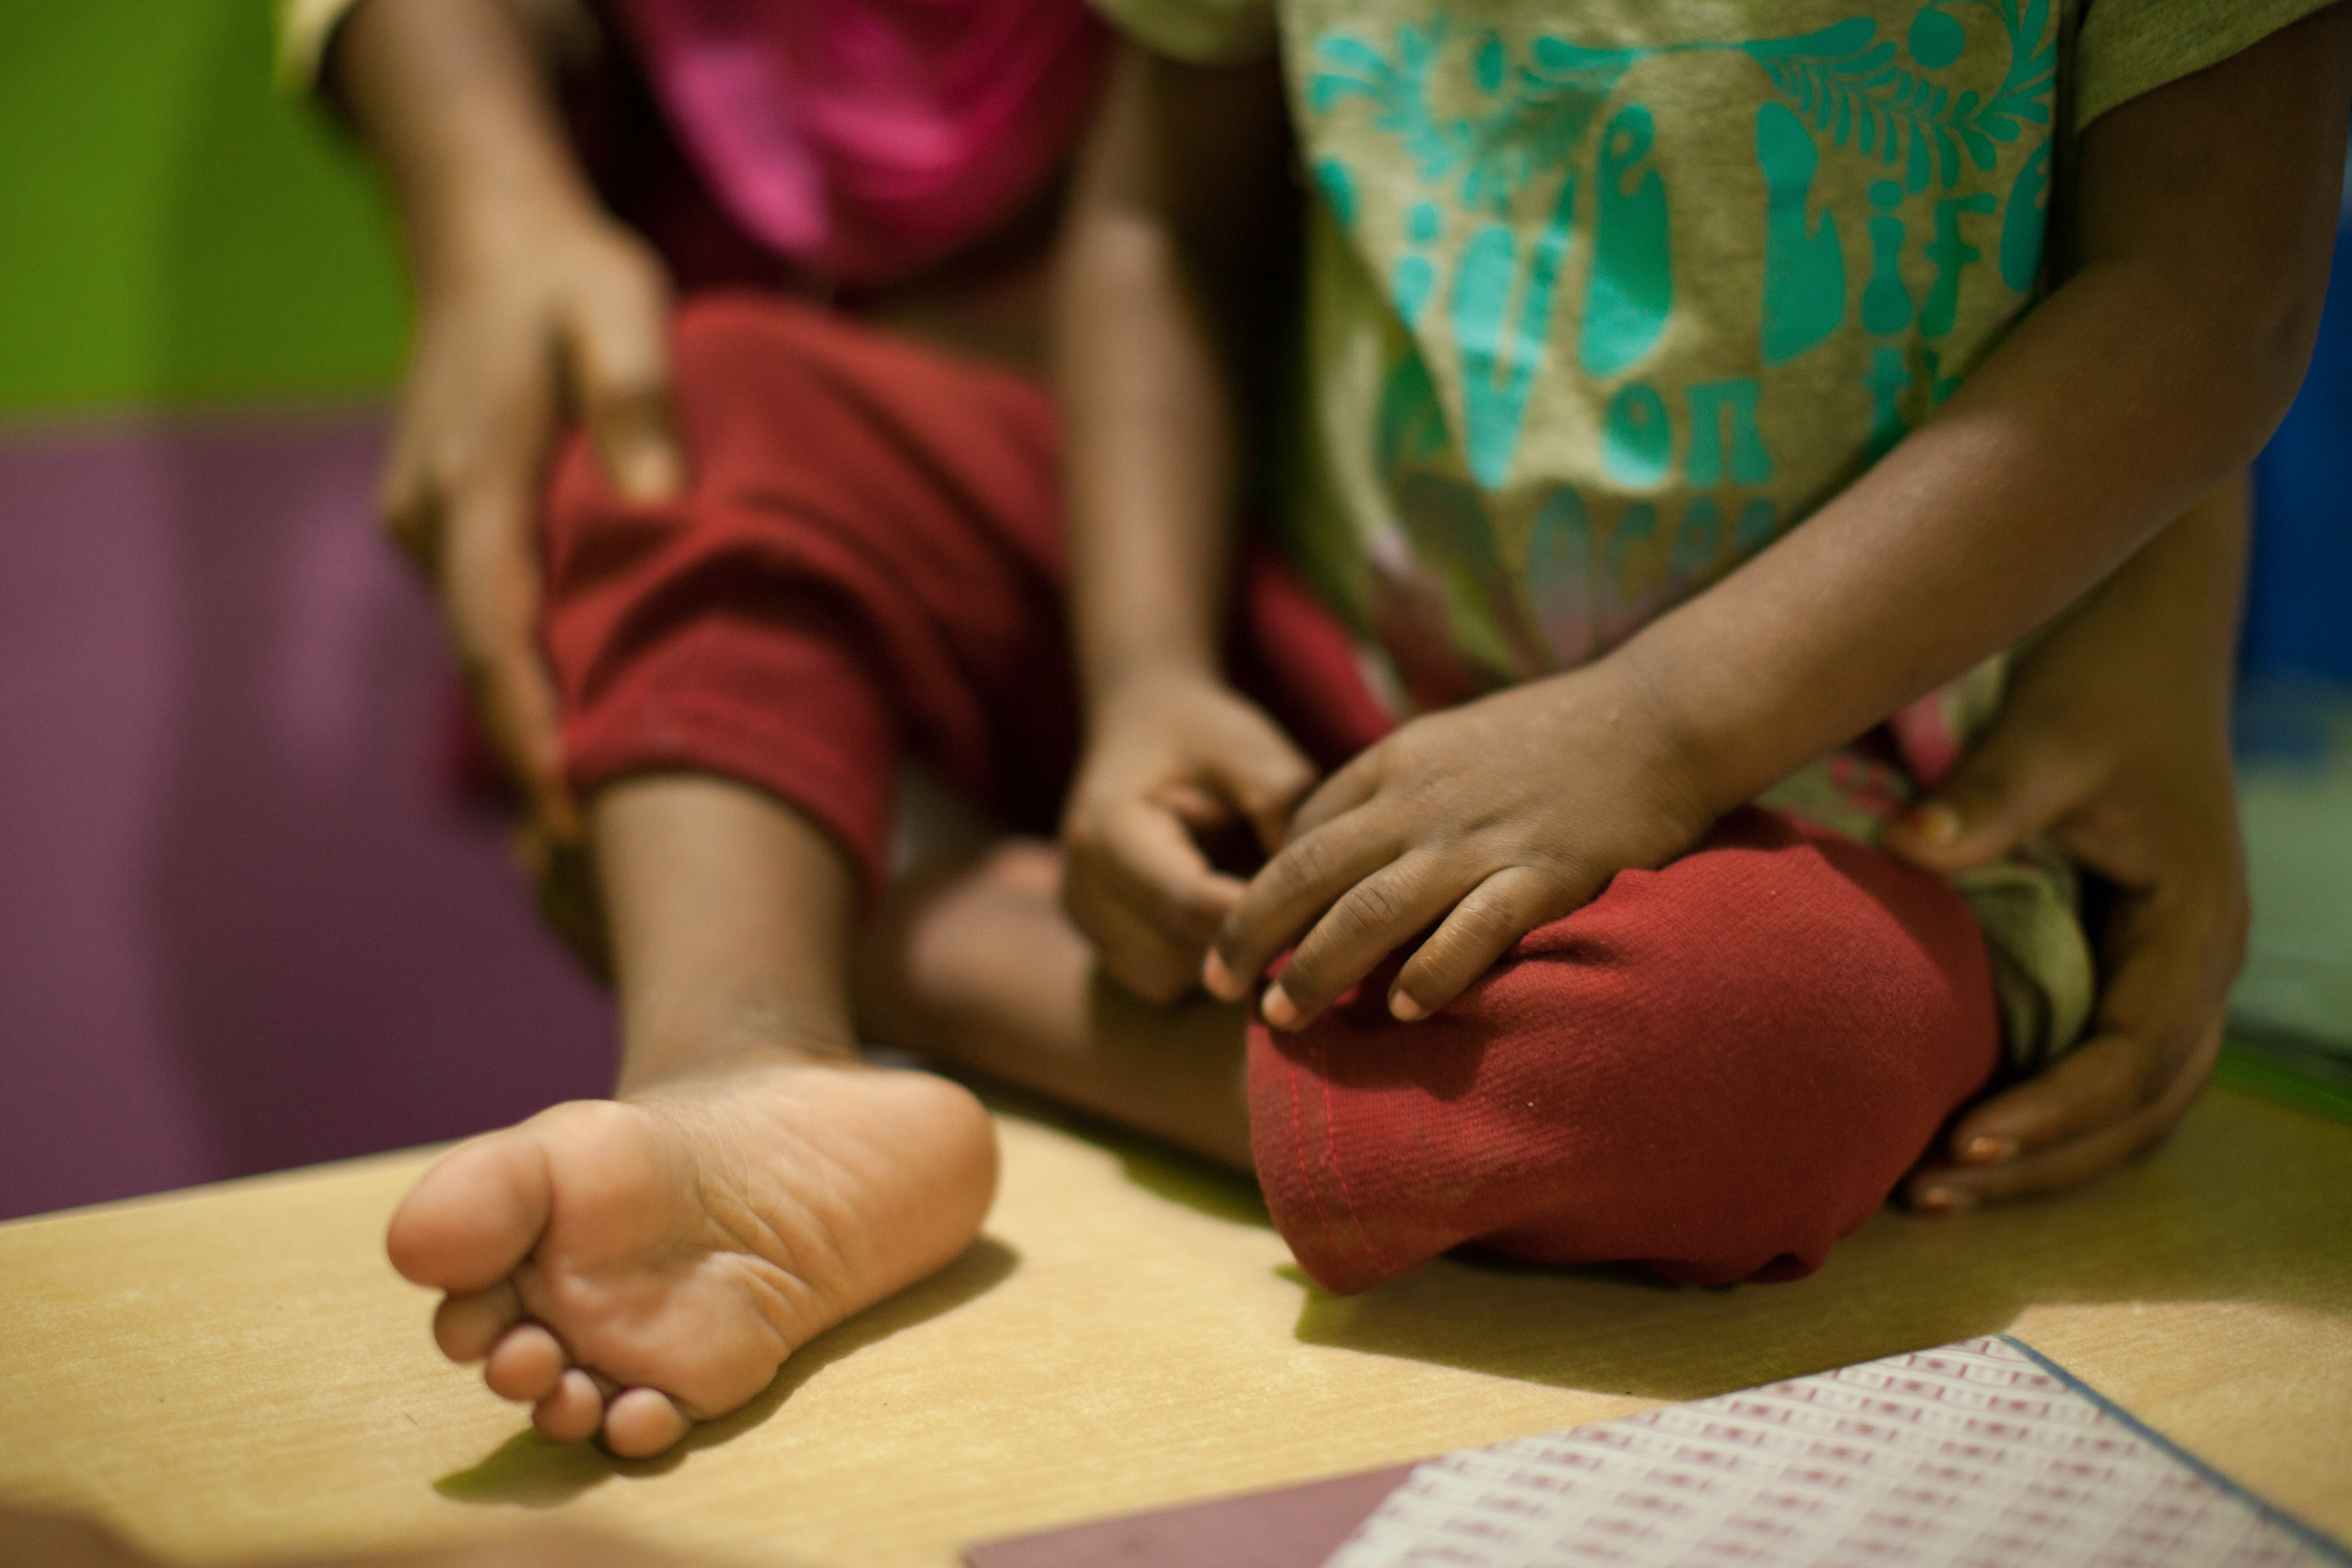 Child protection policy - a little boy's hands and feet.